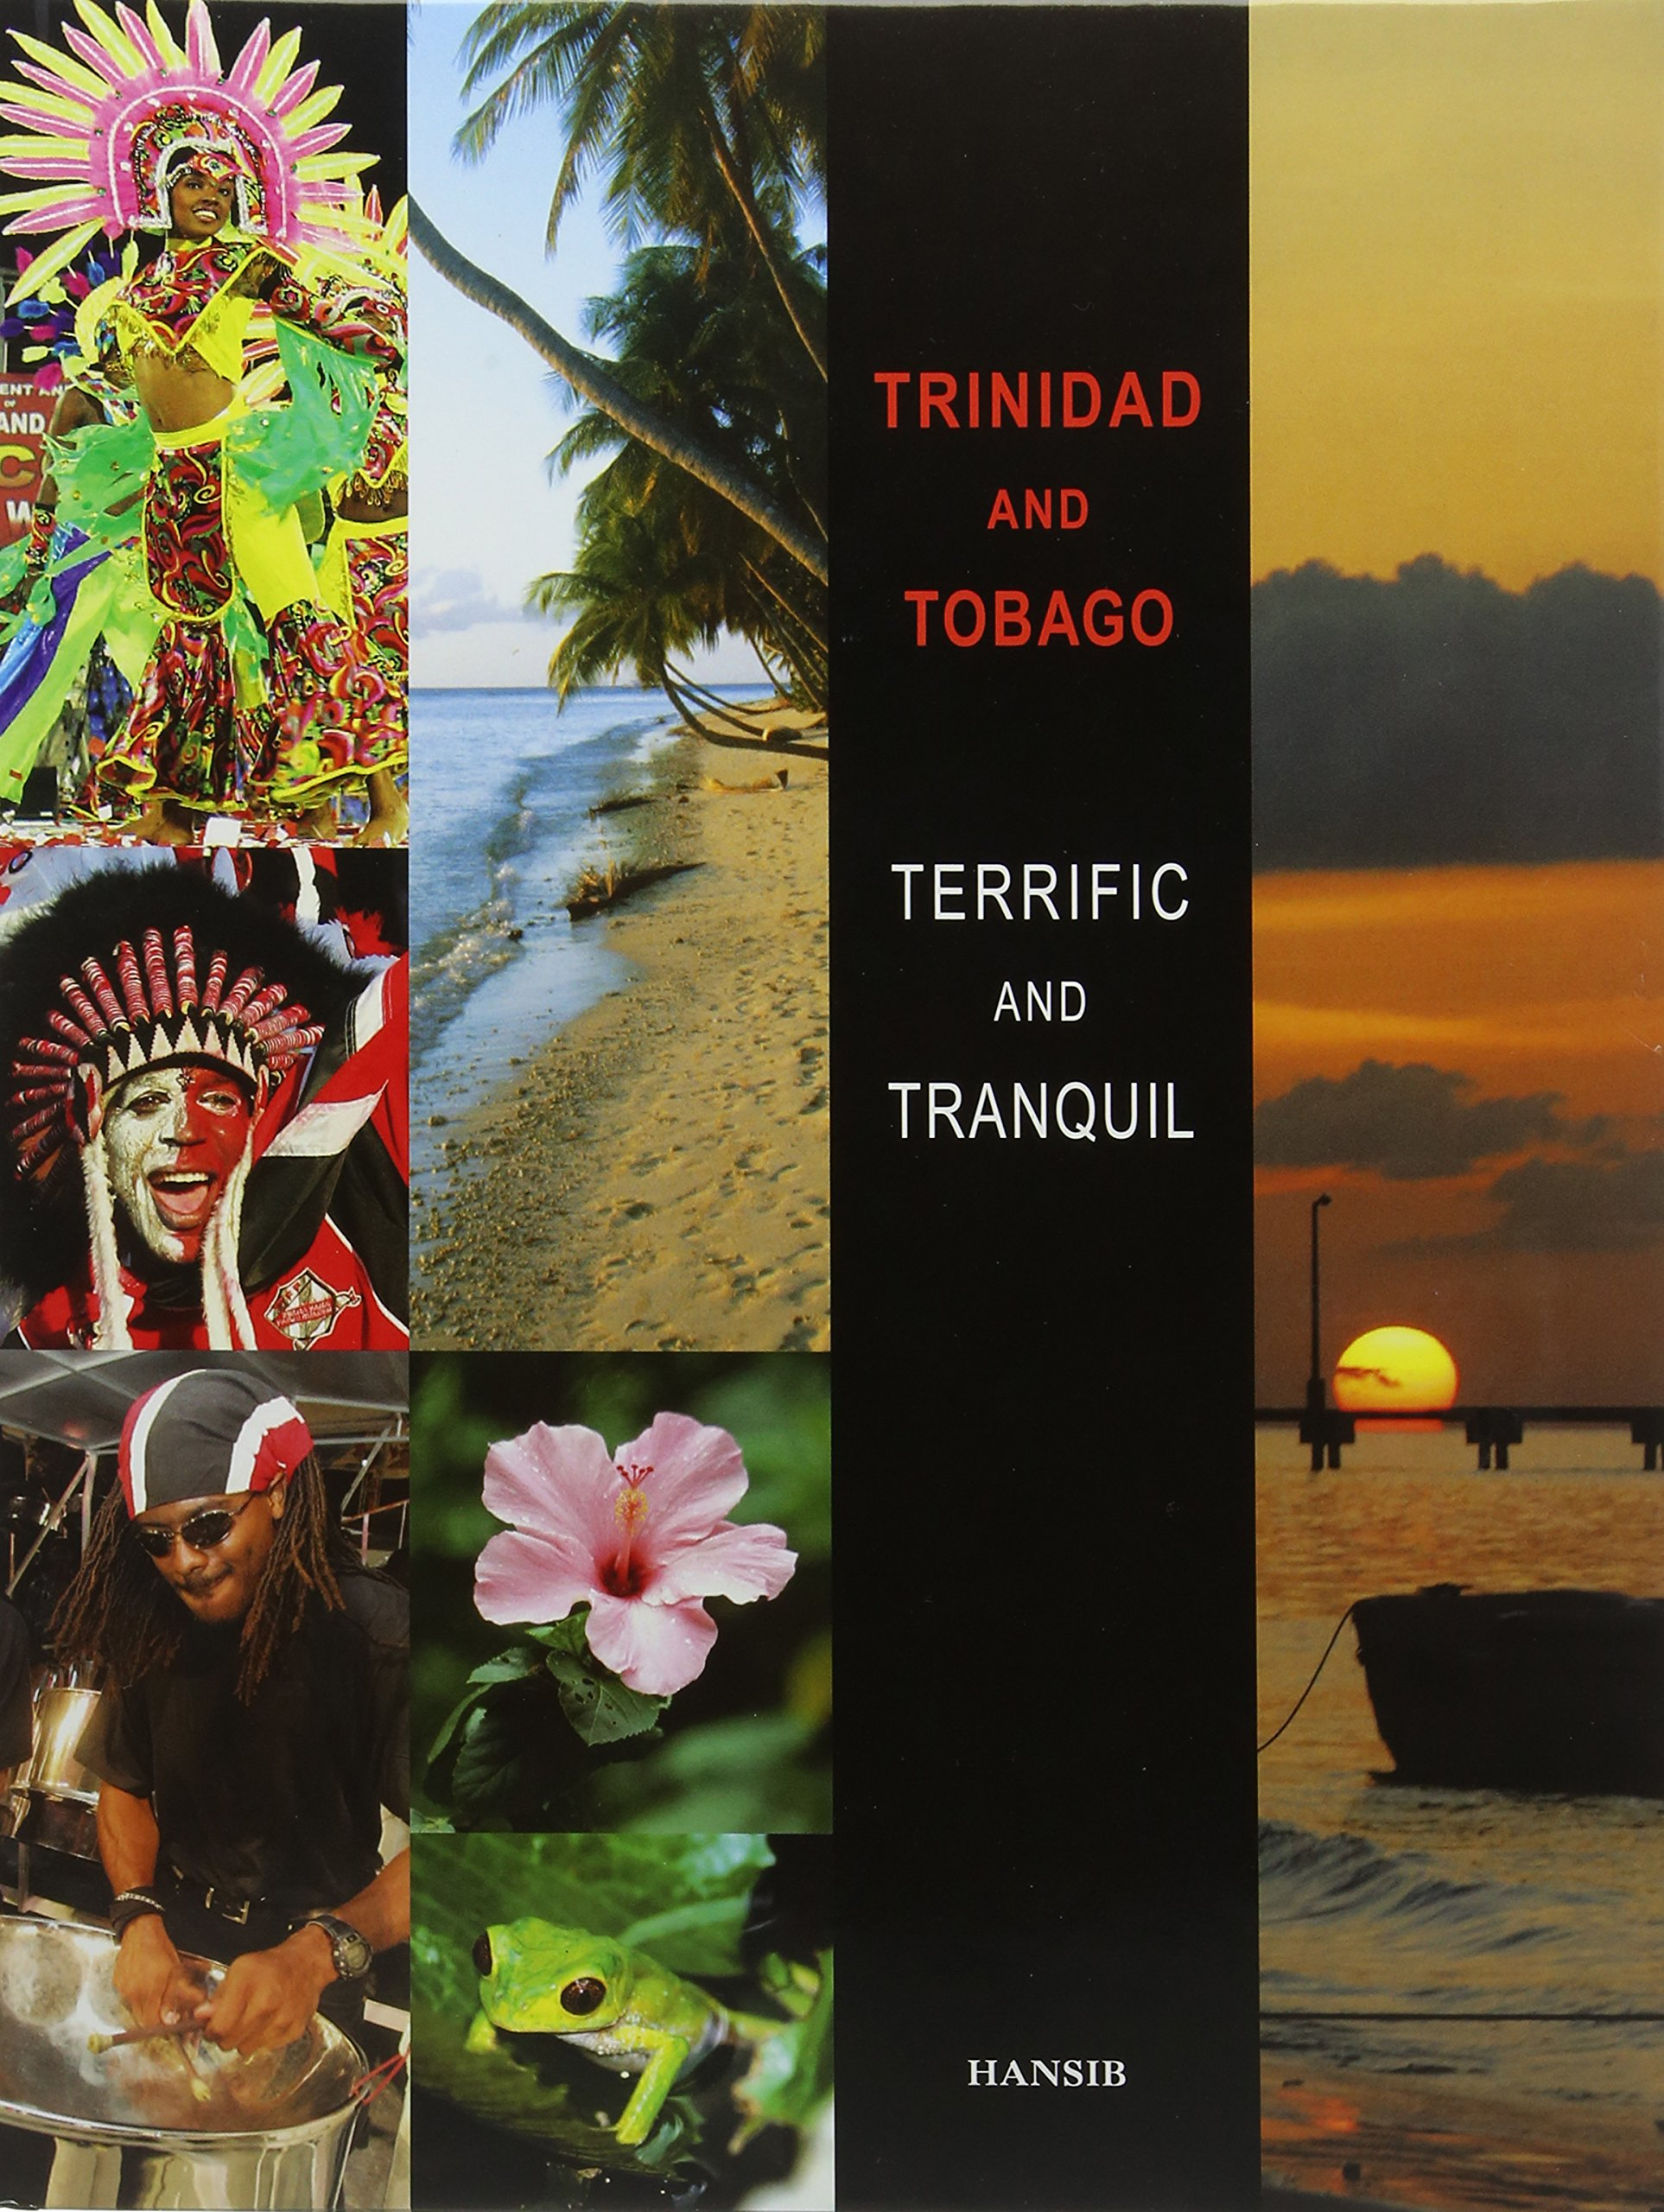 Trinidad And Tobago Terrific and Tranquil